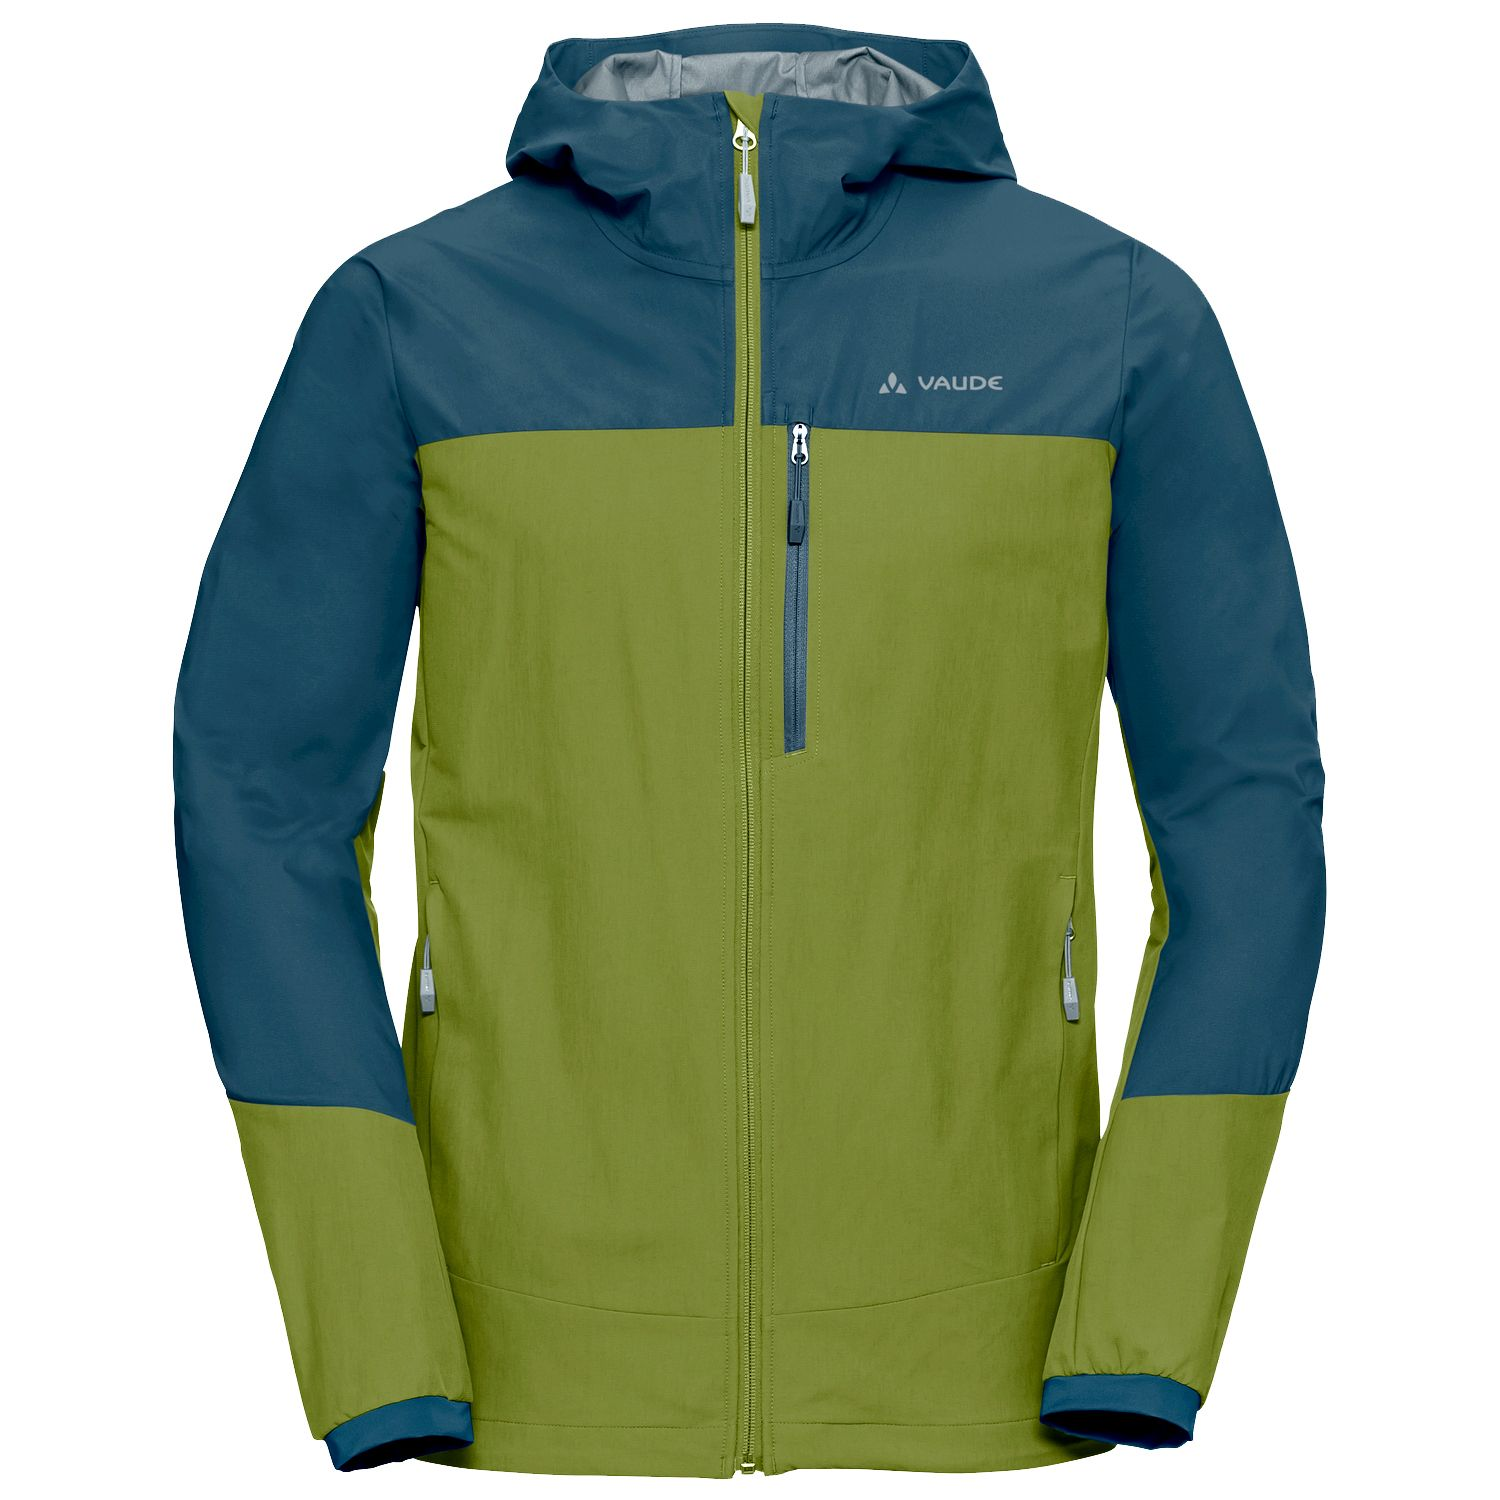 reputable site 35535 91e17 SKARVAN S softshell Jacket holly green